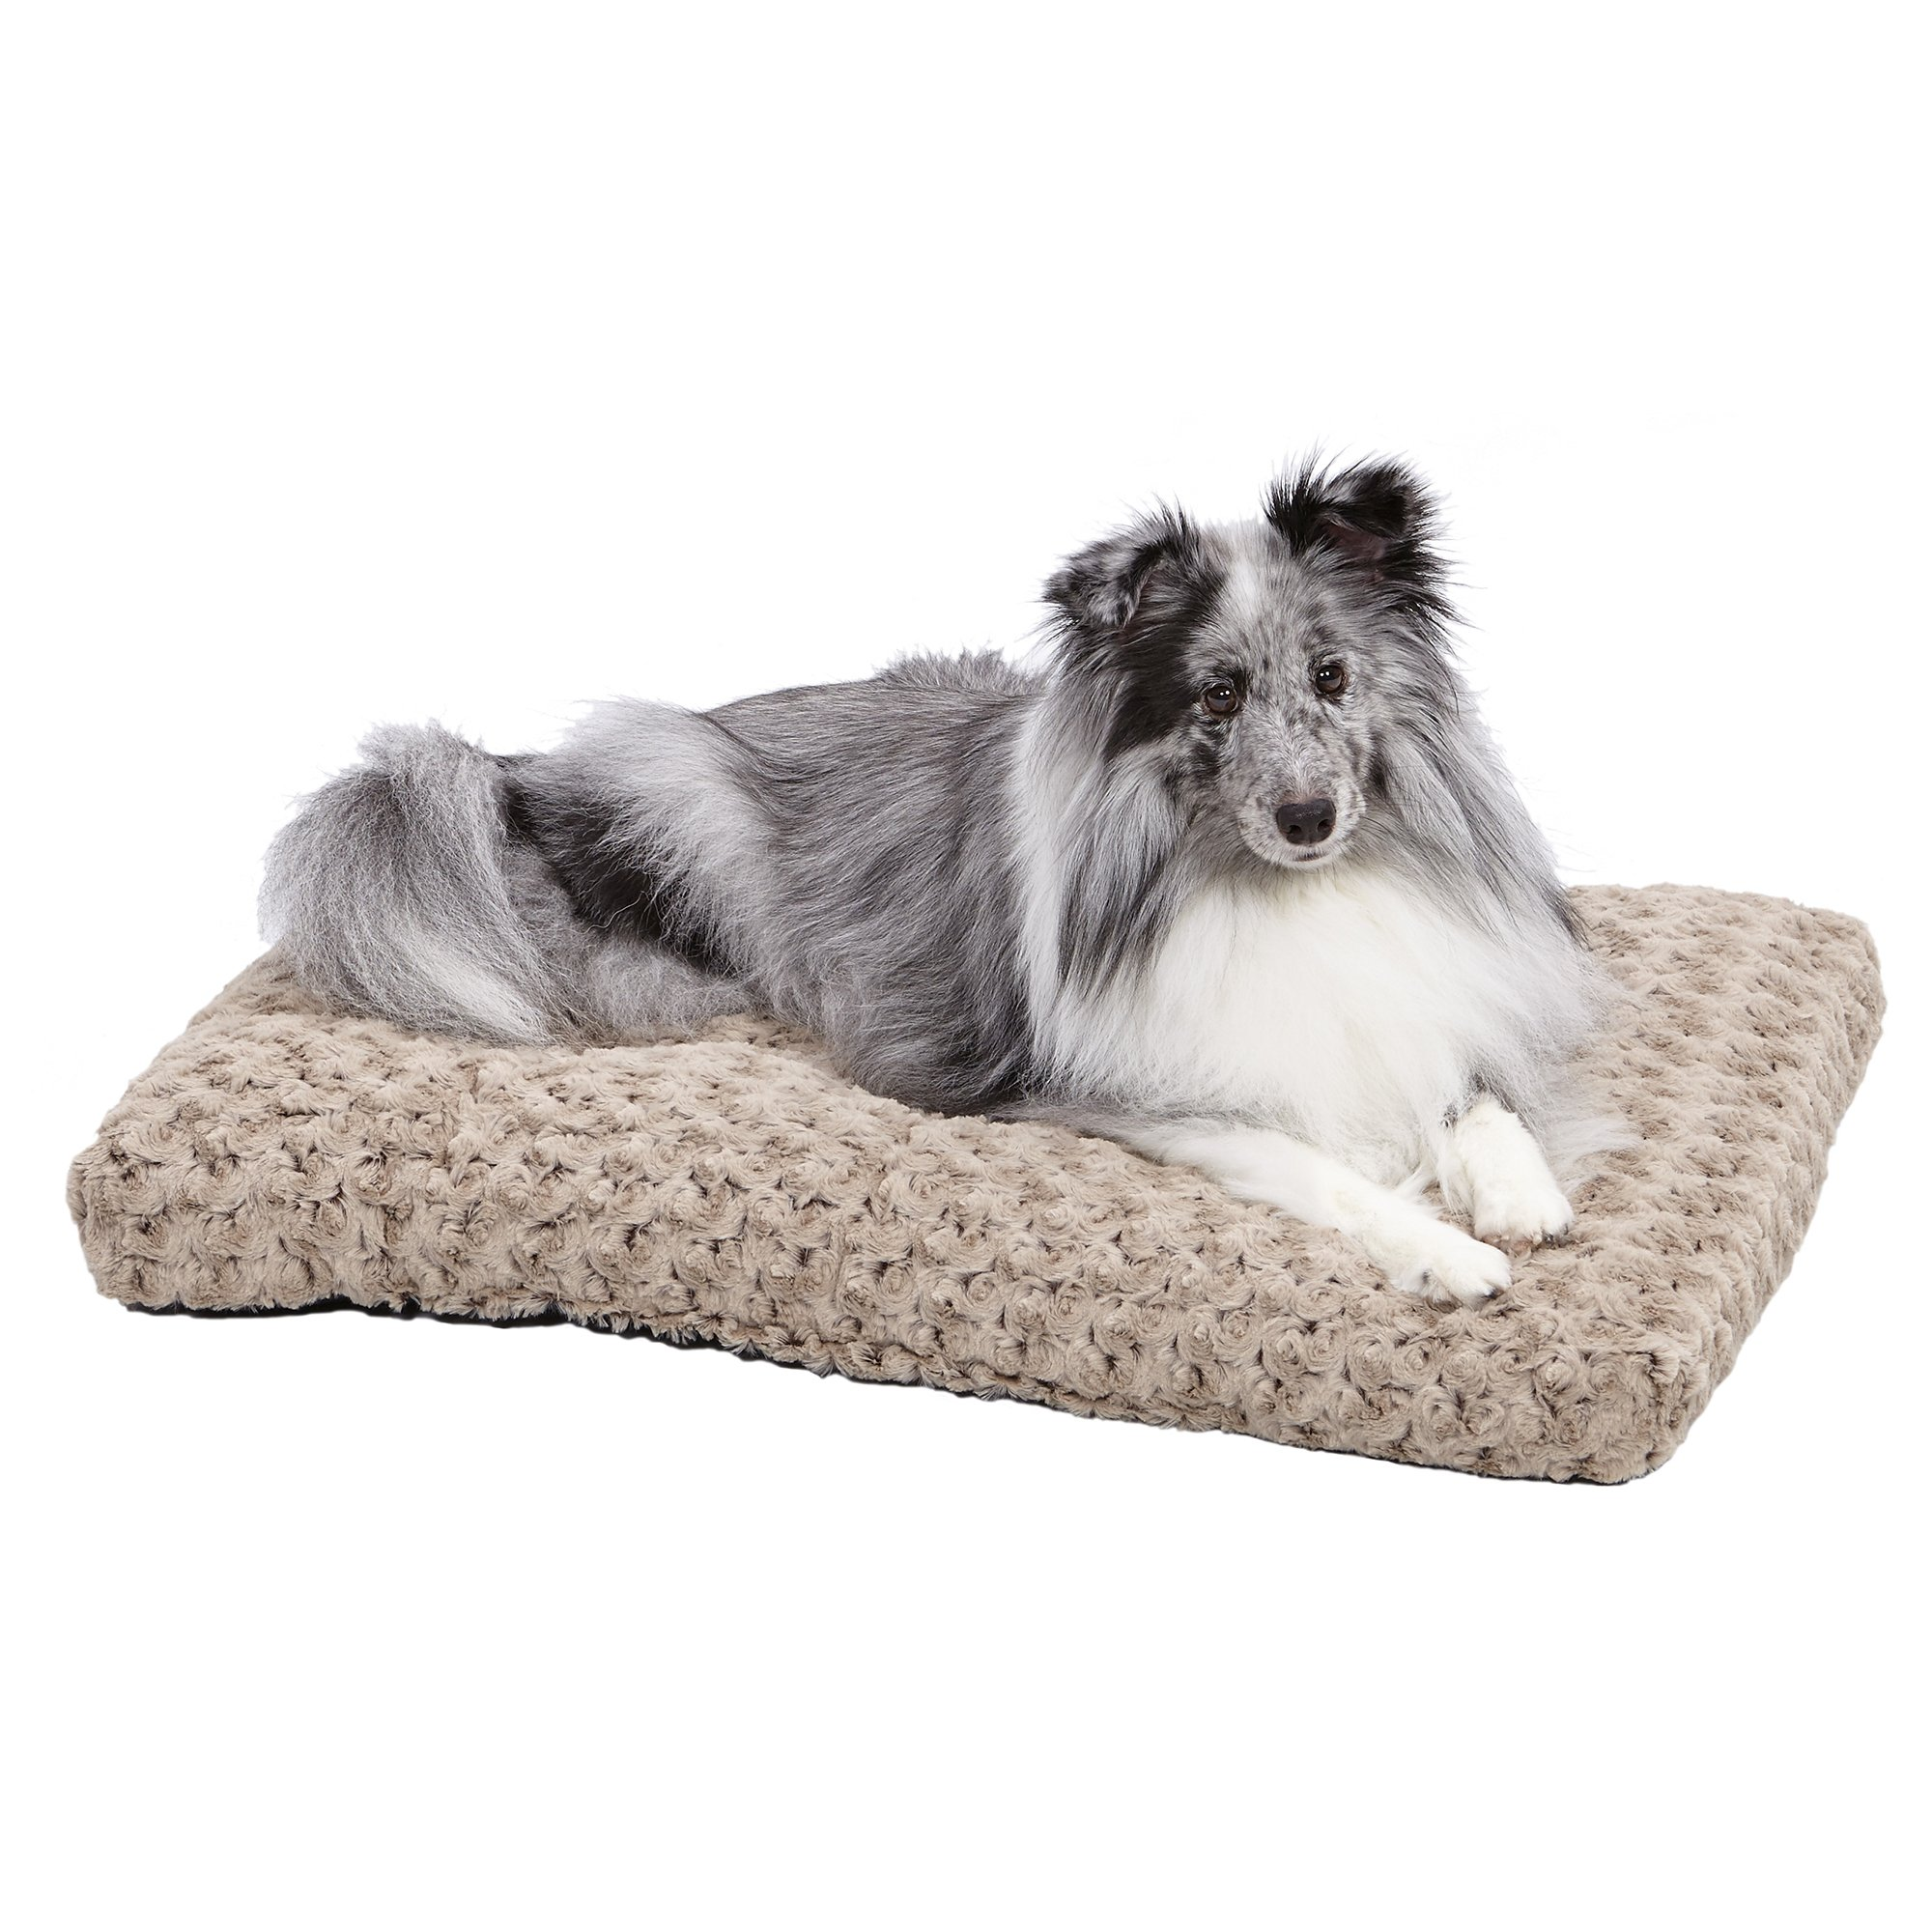 Plush Dog Bed | Ombré Swirl Dog Bed & Cat Bed | Mocha 29L x 21W x 2H-Inches for Medium Dog Breeds